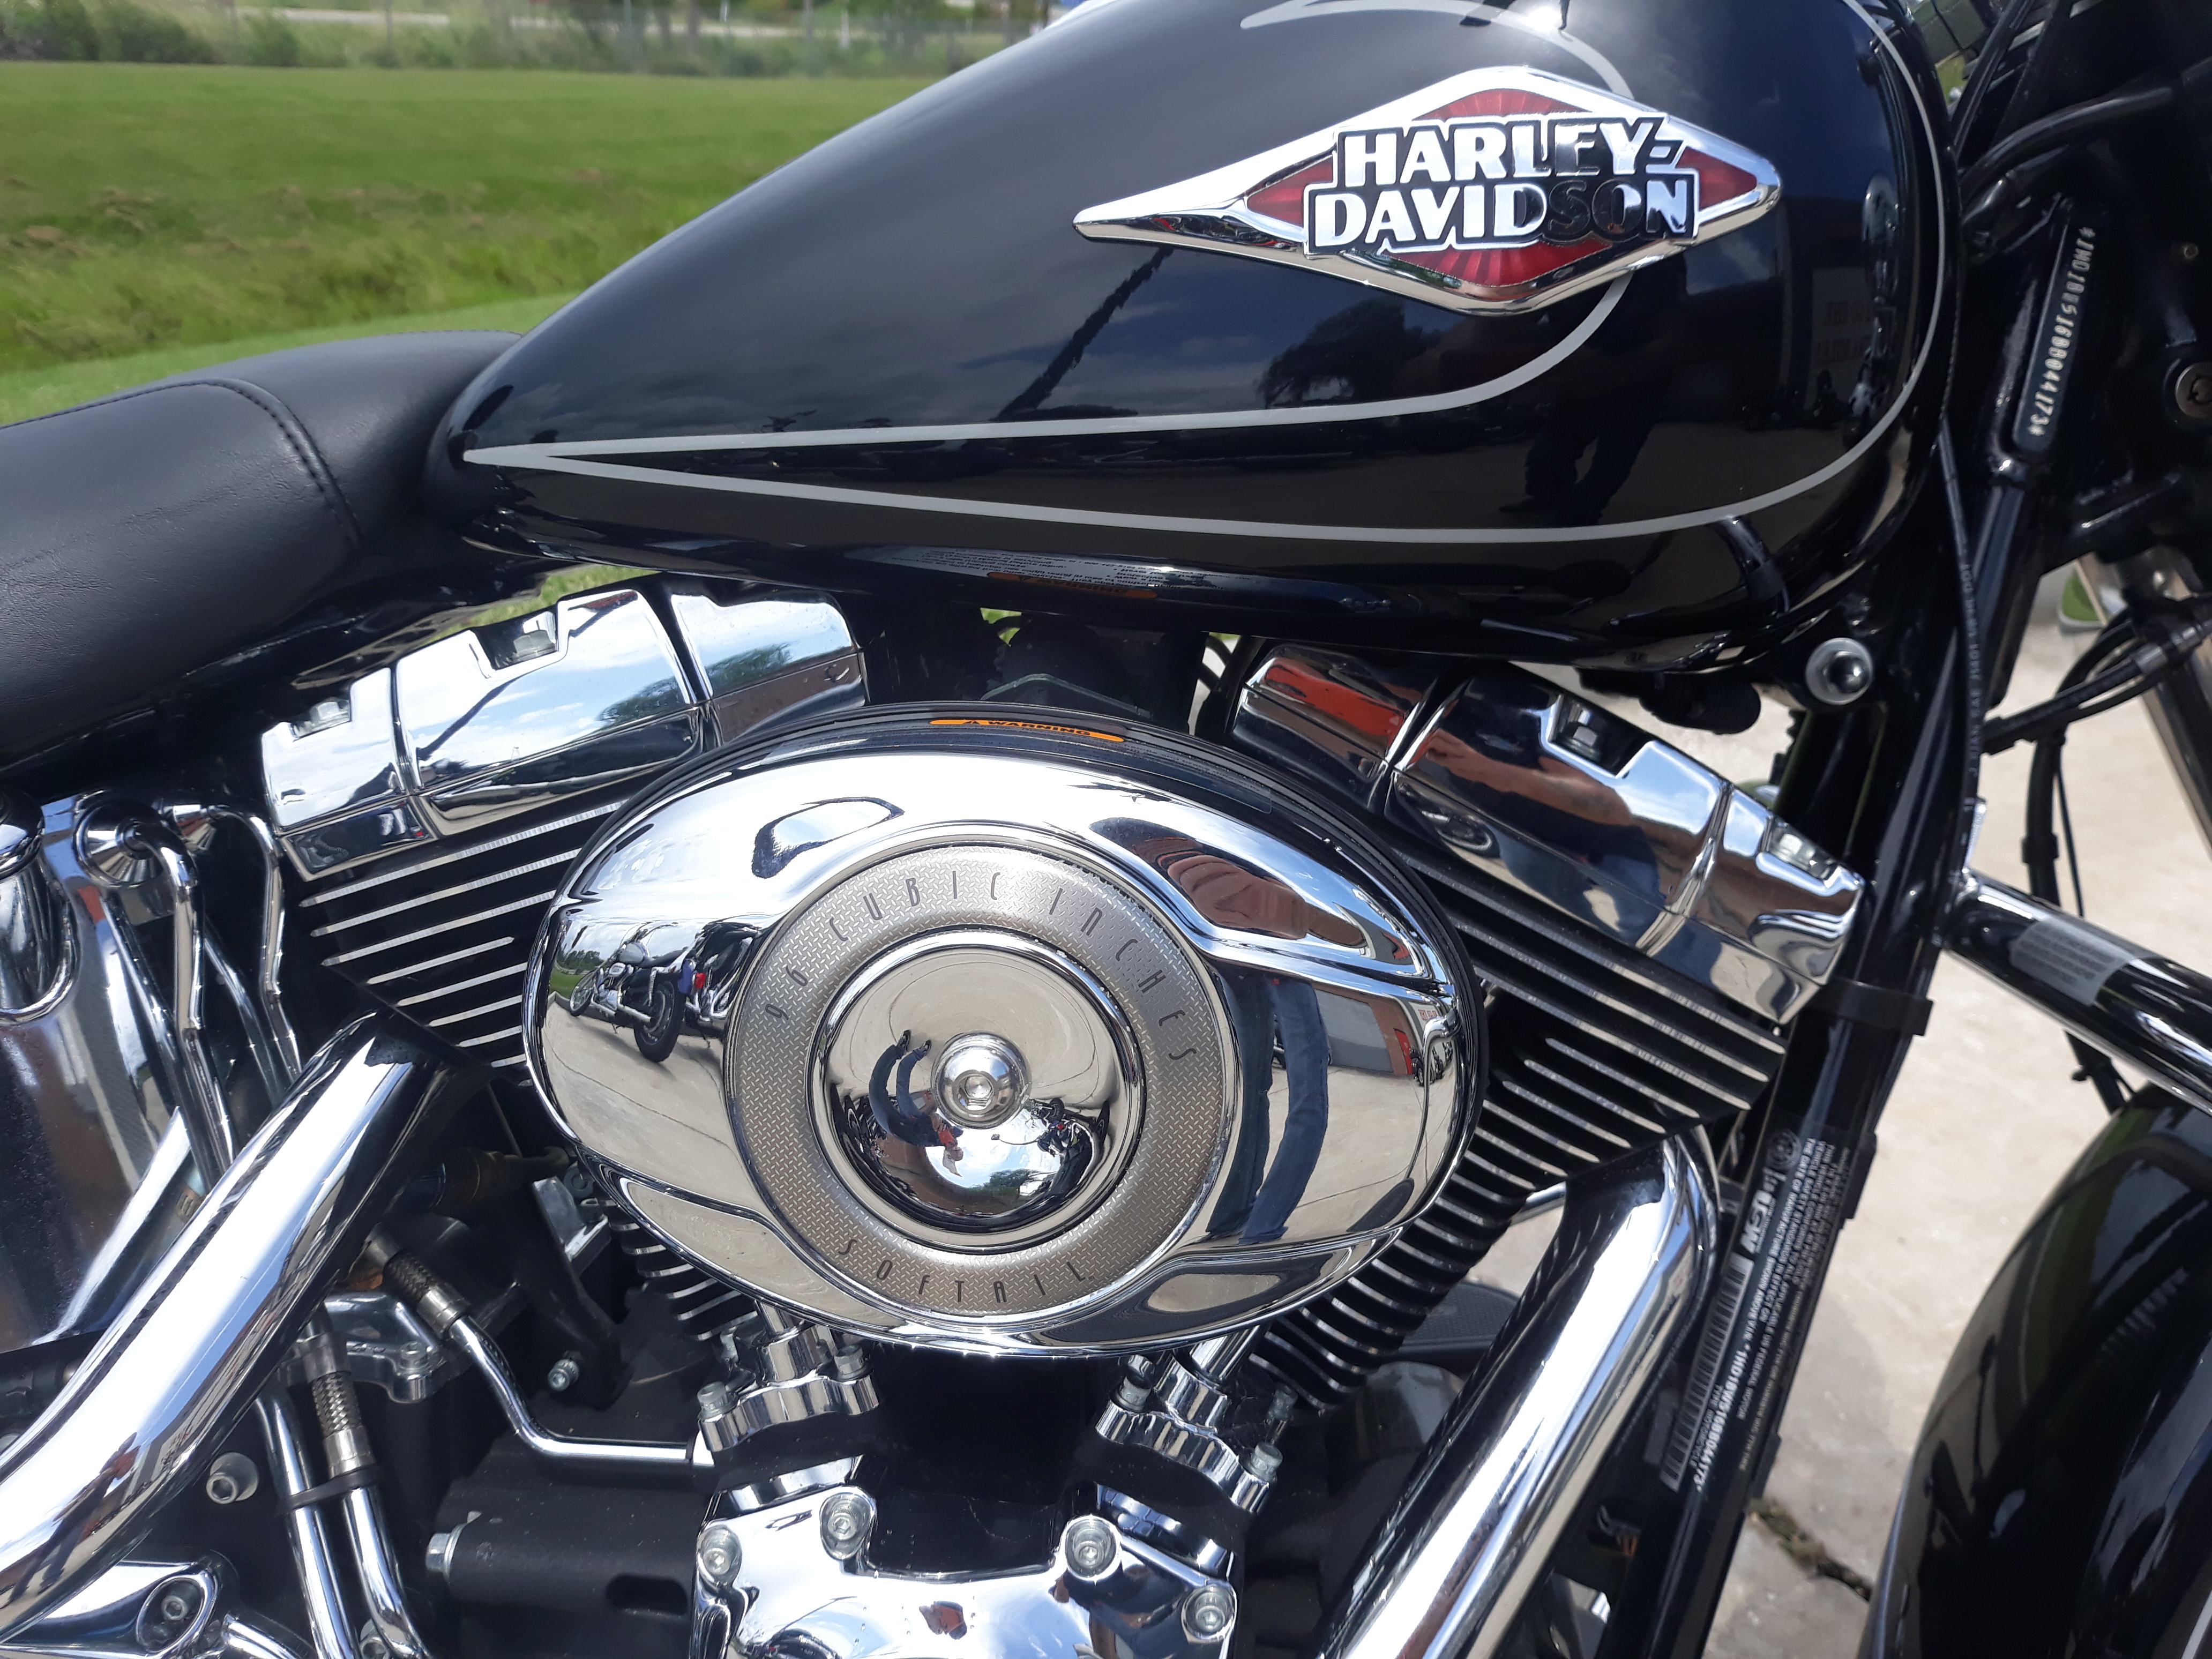 Pre-Owned 2011 Harley-Davidson Heritage Softail Classic